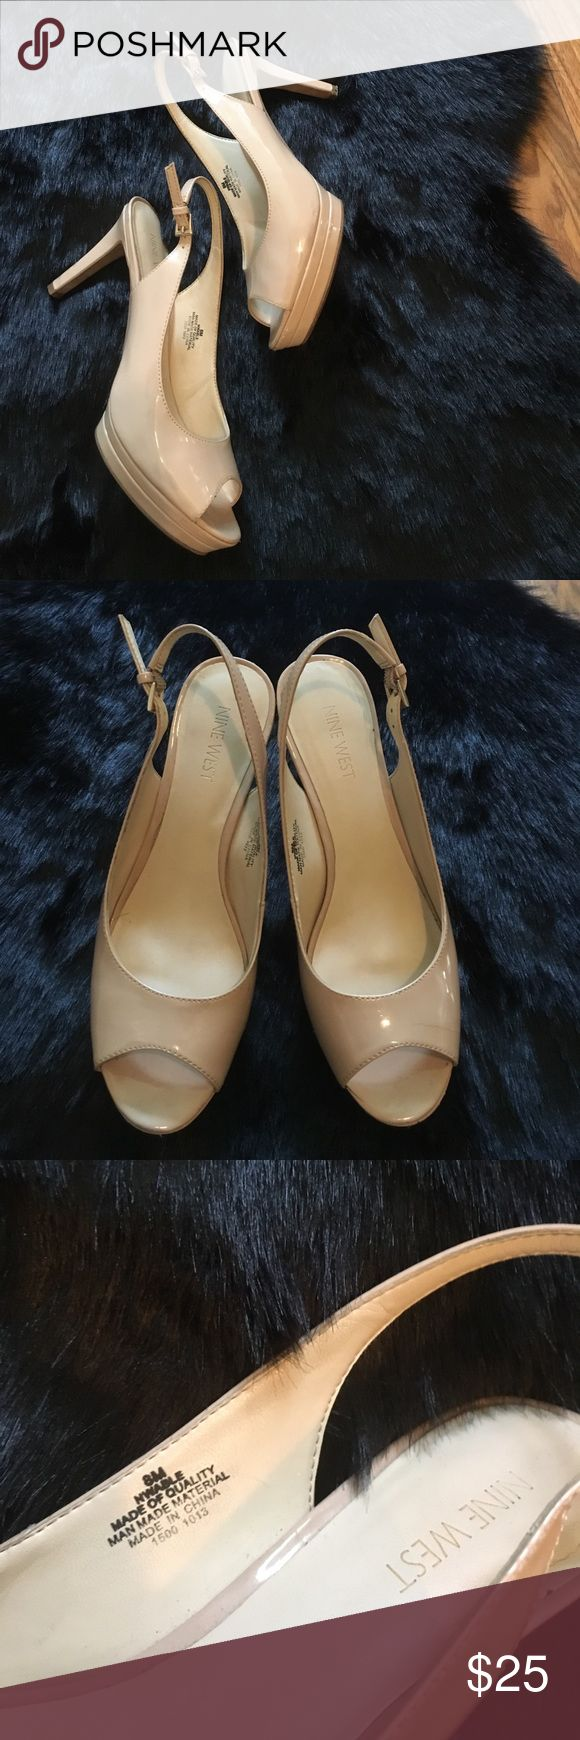 Nine West heels Nude open toe heels, good used condition, scuff mark shown in pic Nine West Shoes Heels